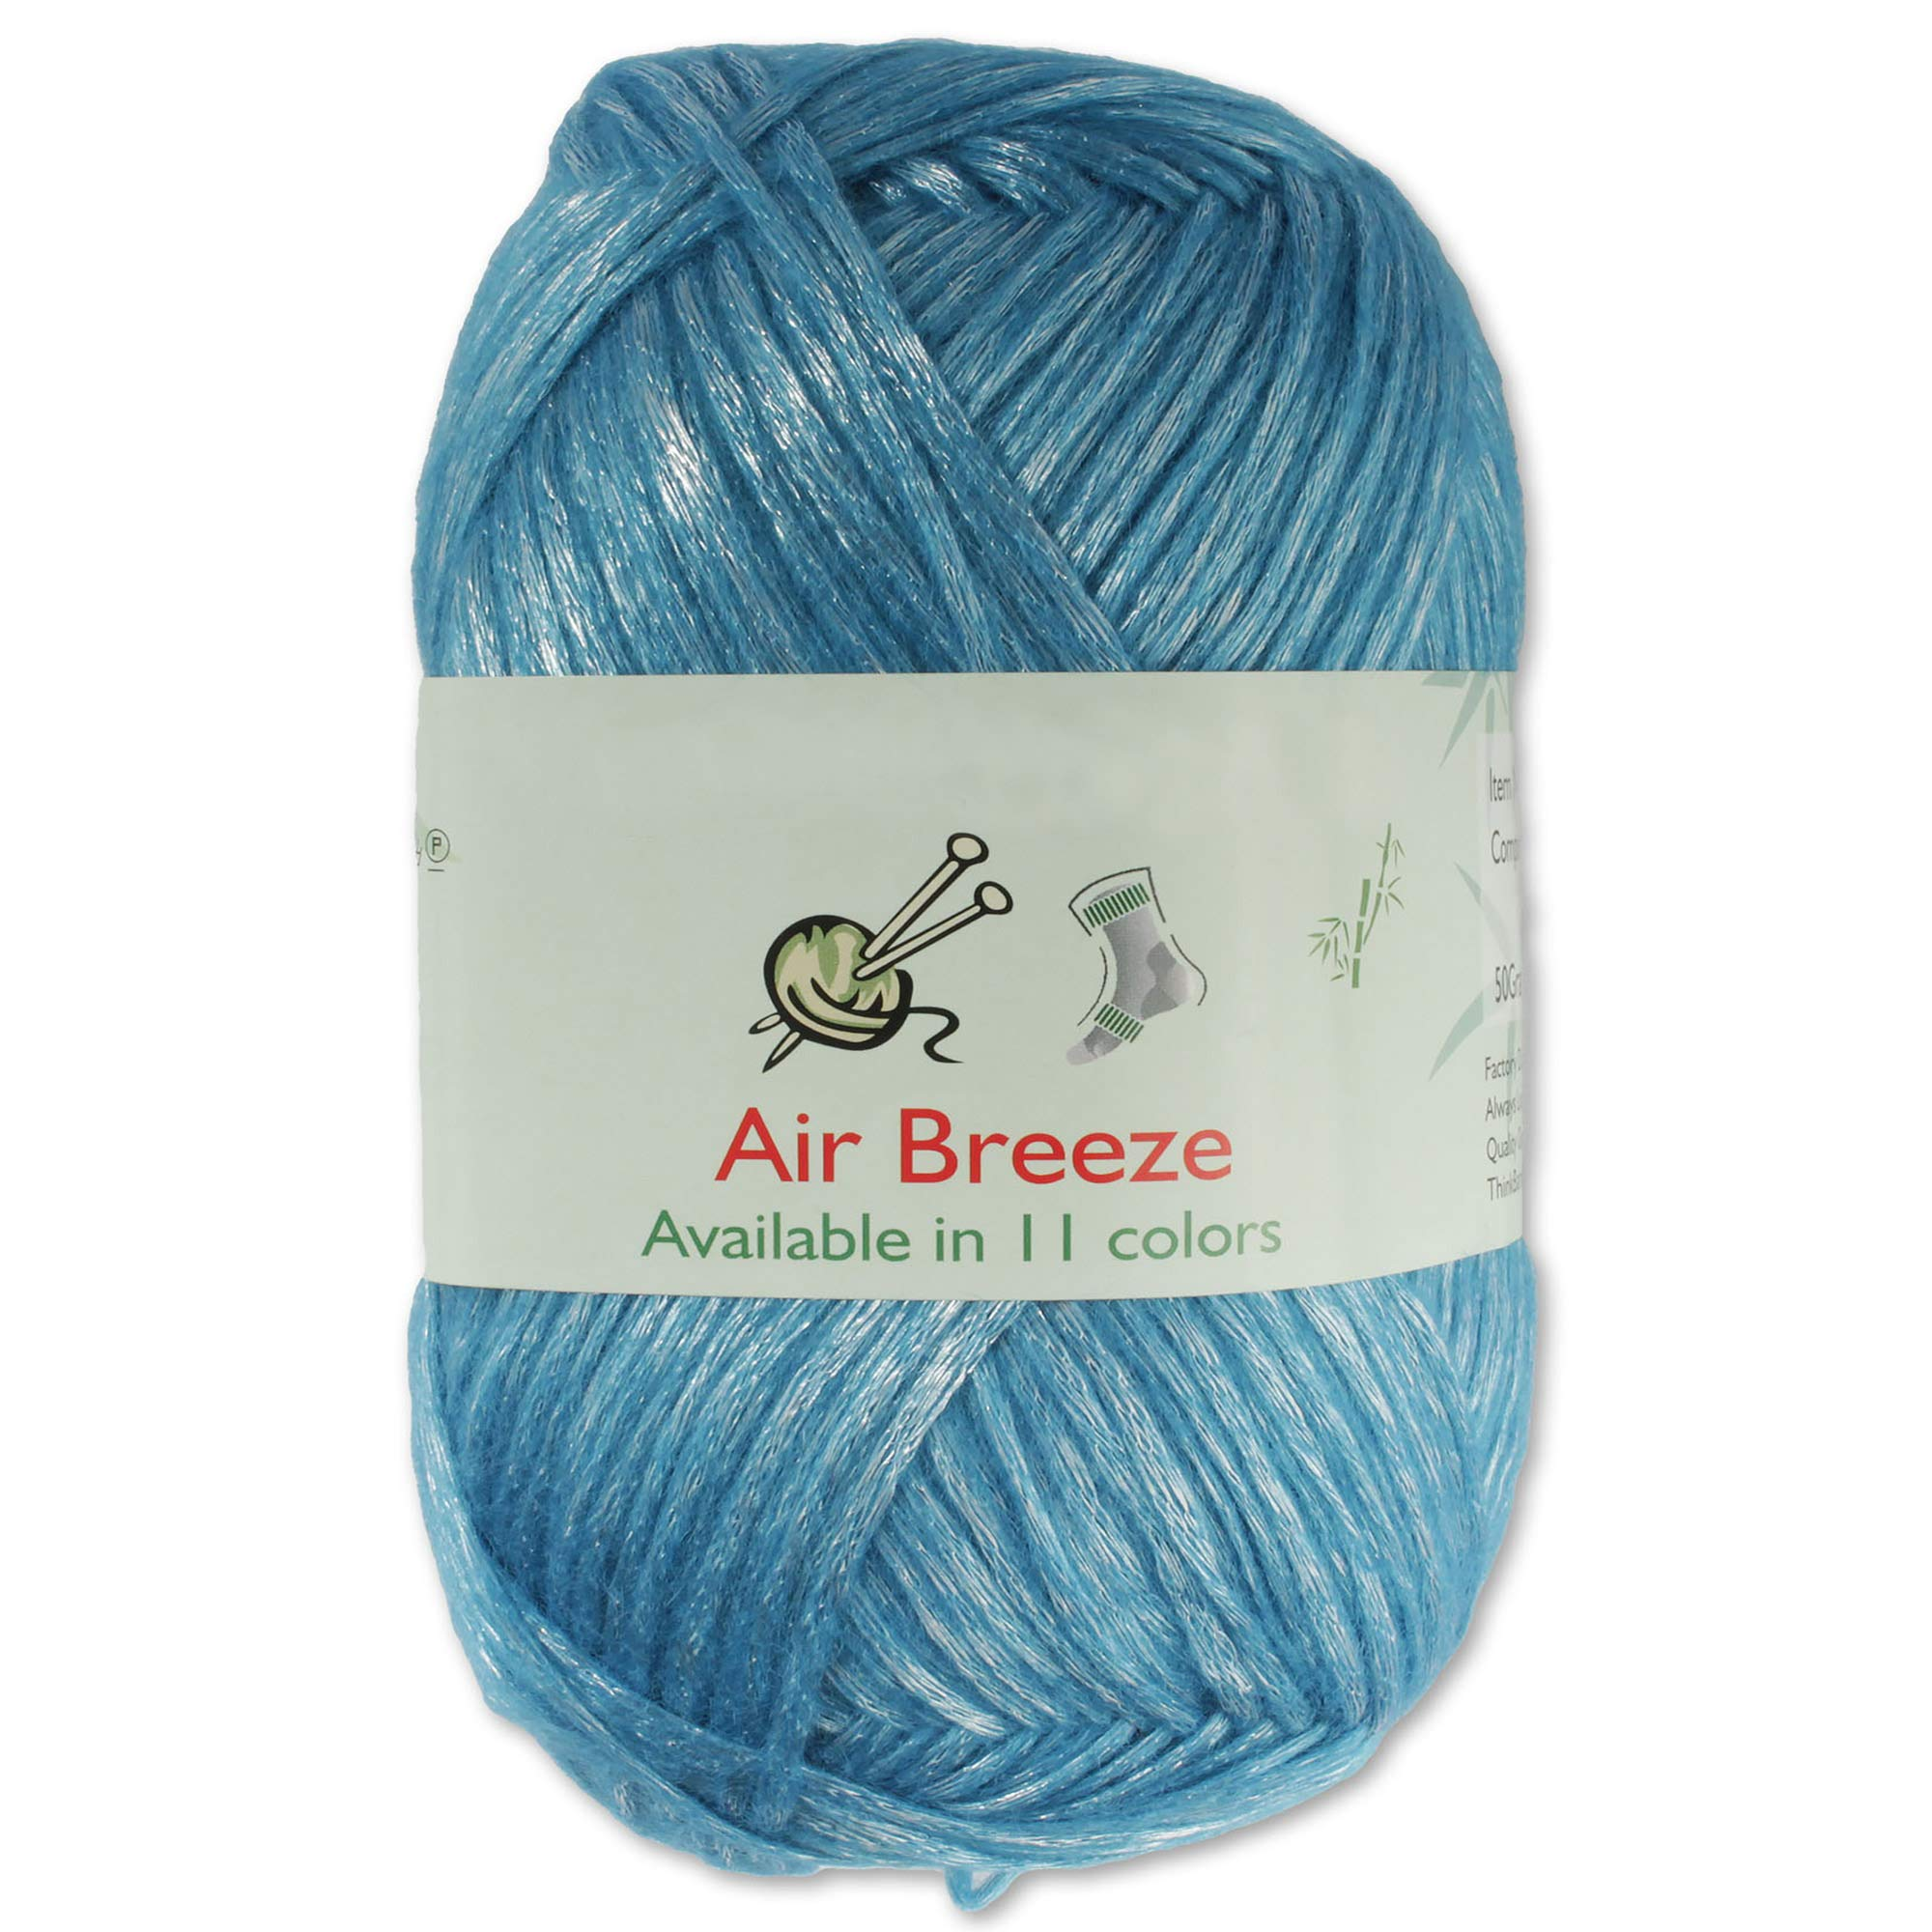 Air Breeze Yarn - Fine Light DK Weight Yarn for Socks, Sweaters, Baby Items - 50g/Skein - Lagoon Blue - 4 skeins